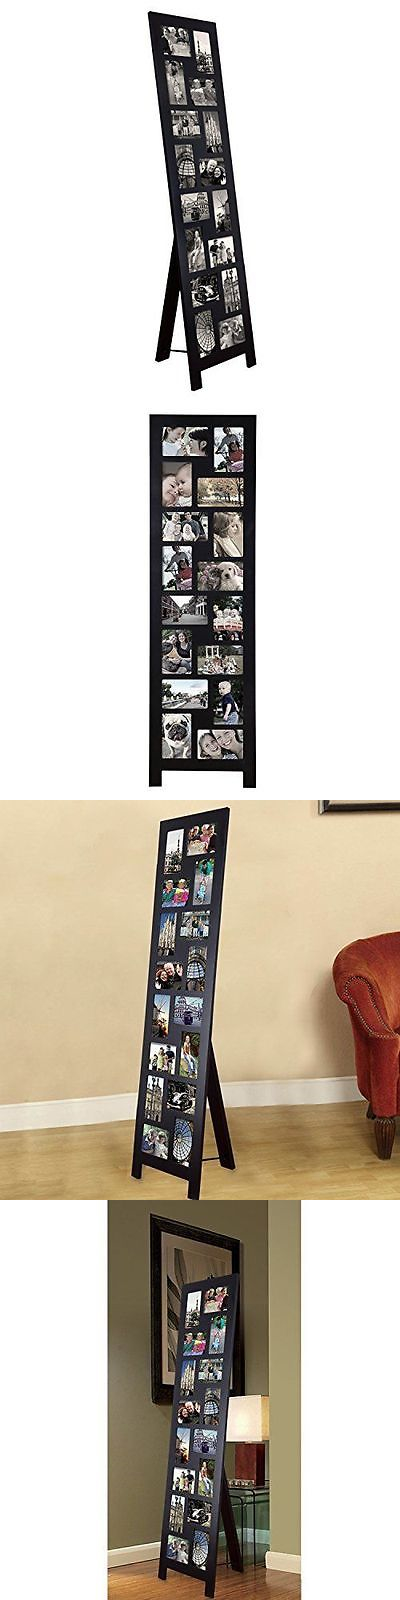 Frames 79654 Adeco 16 Opening 4x6 Black Wood Floor Standing Easel Photo Picture